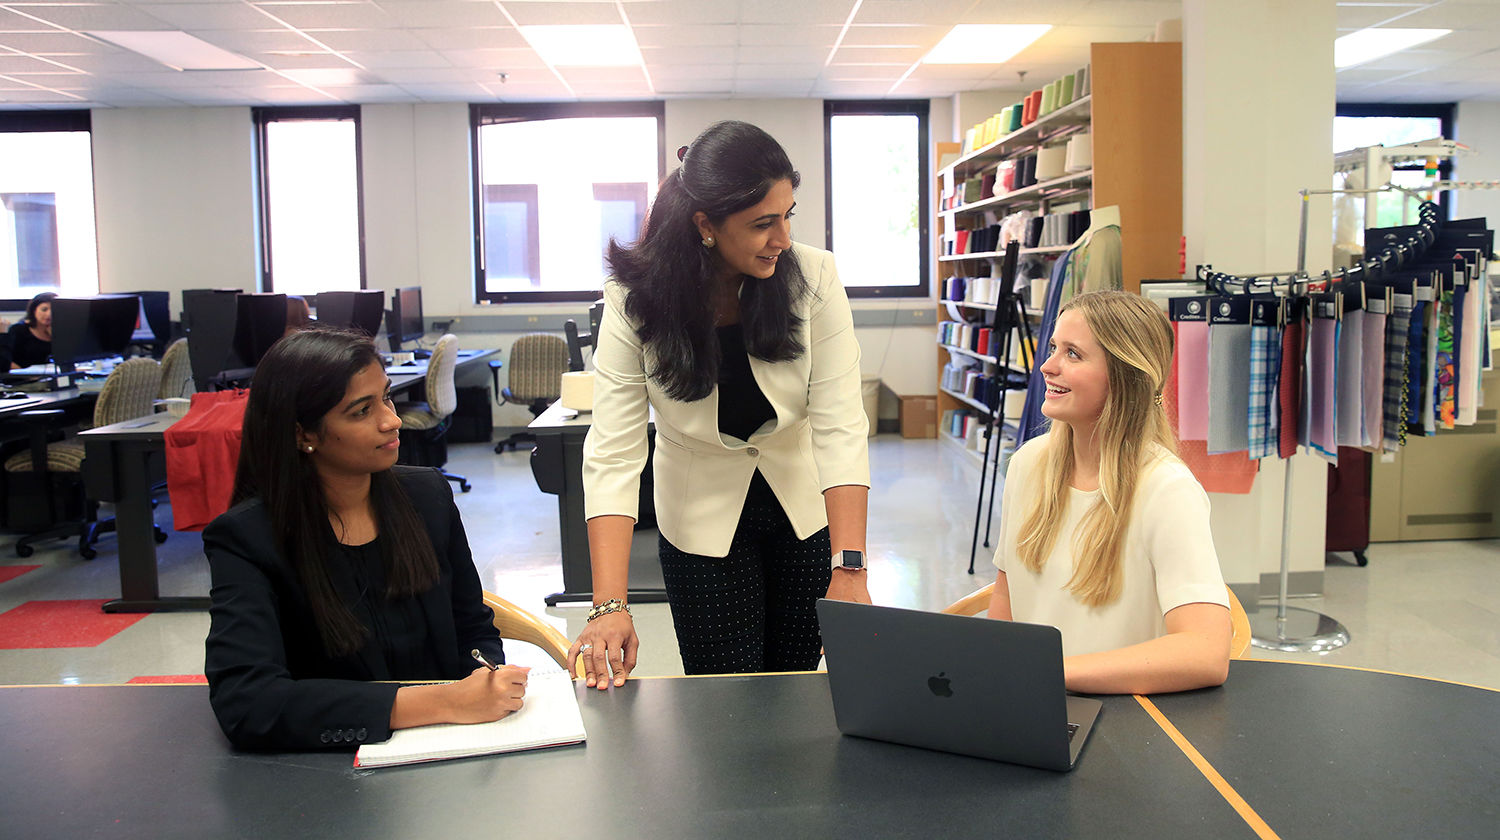 TATM professor Dr. Kavita Mathur speaks with two students